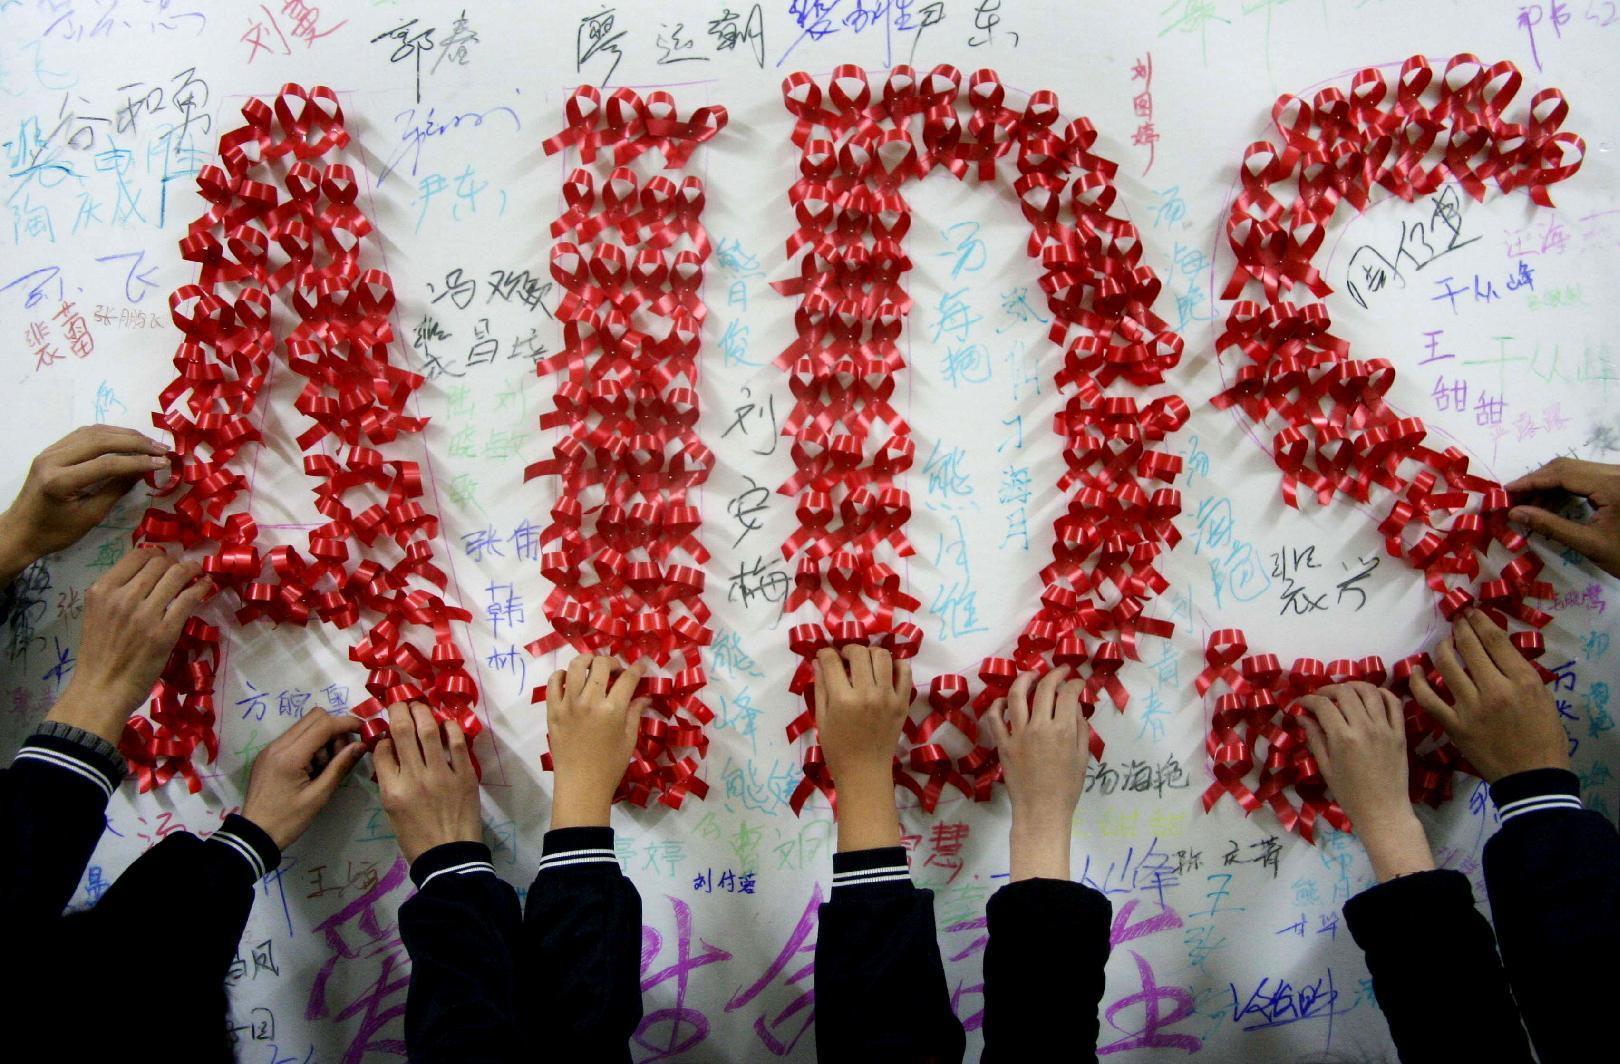 Shame in China as village votes to expel HIV-positive boy